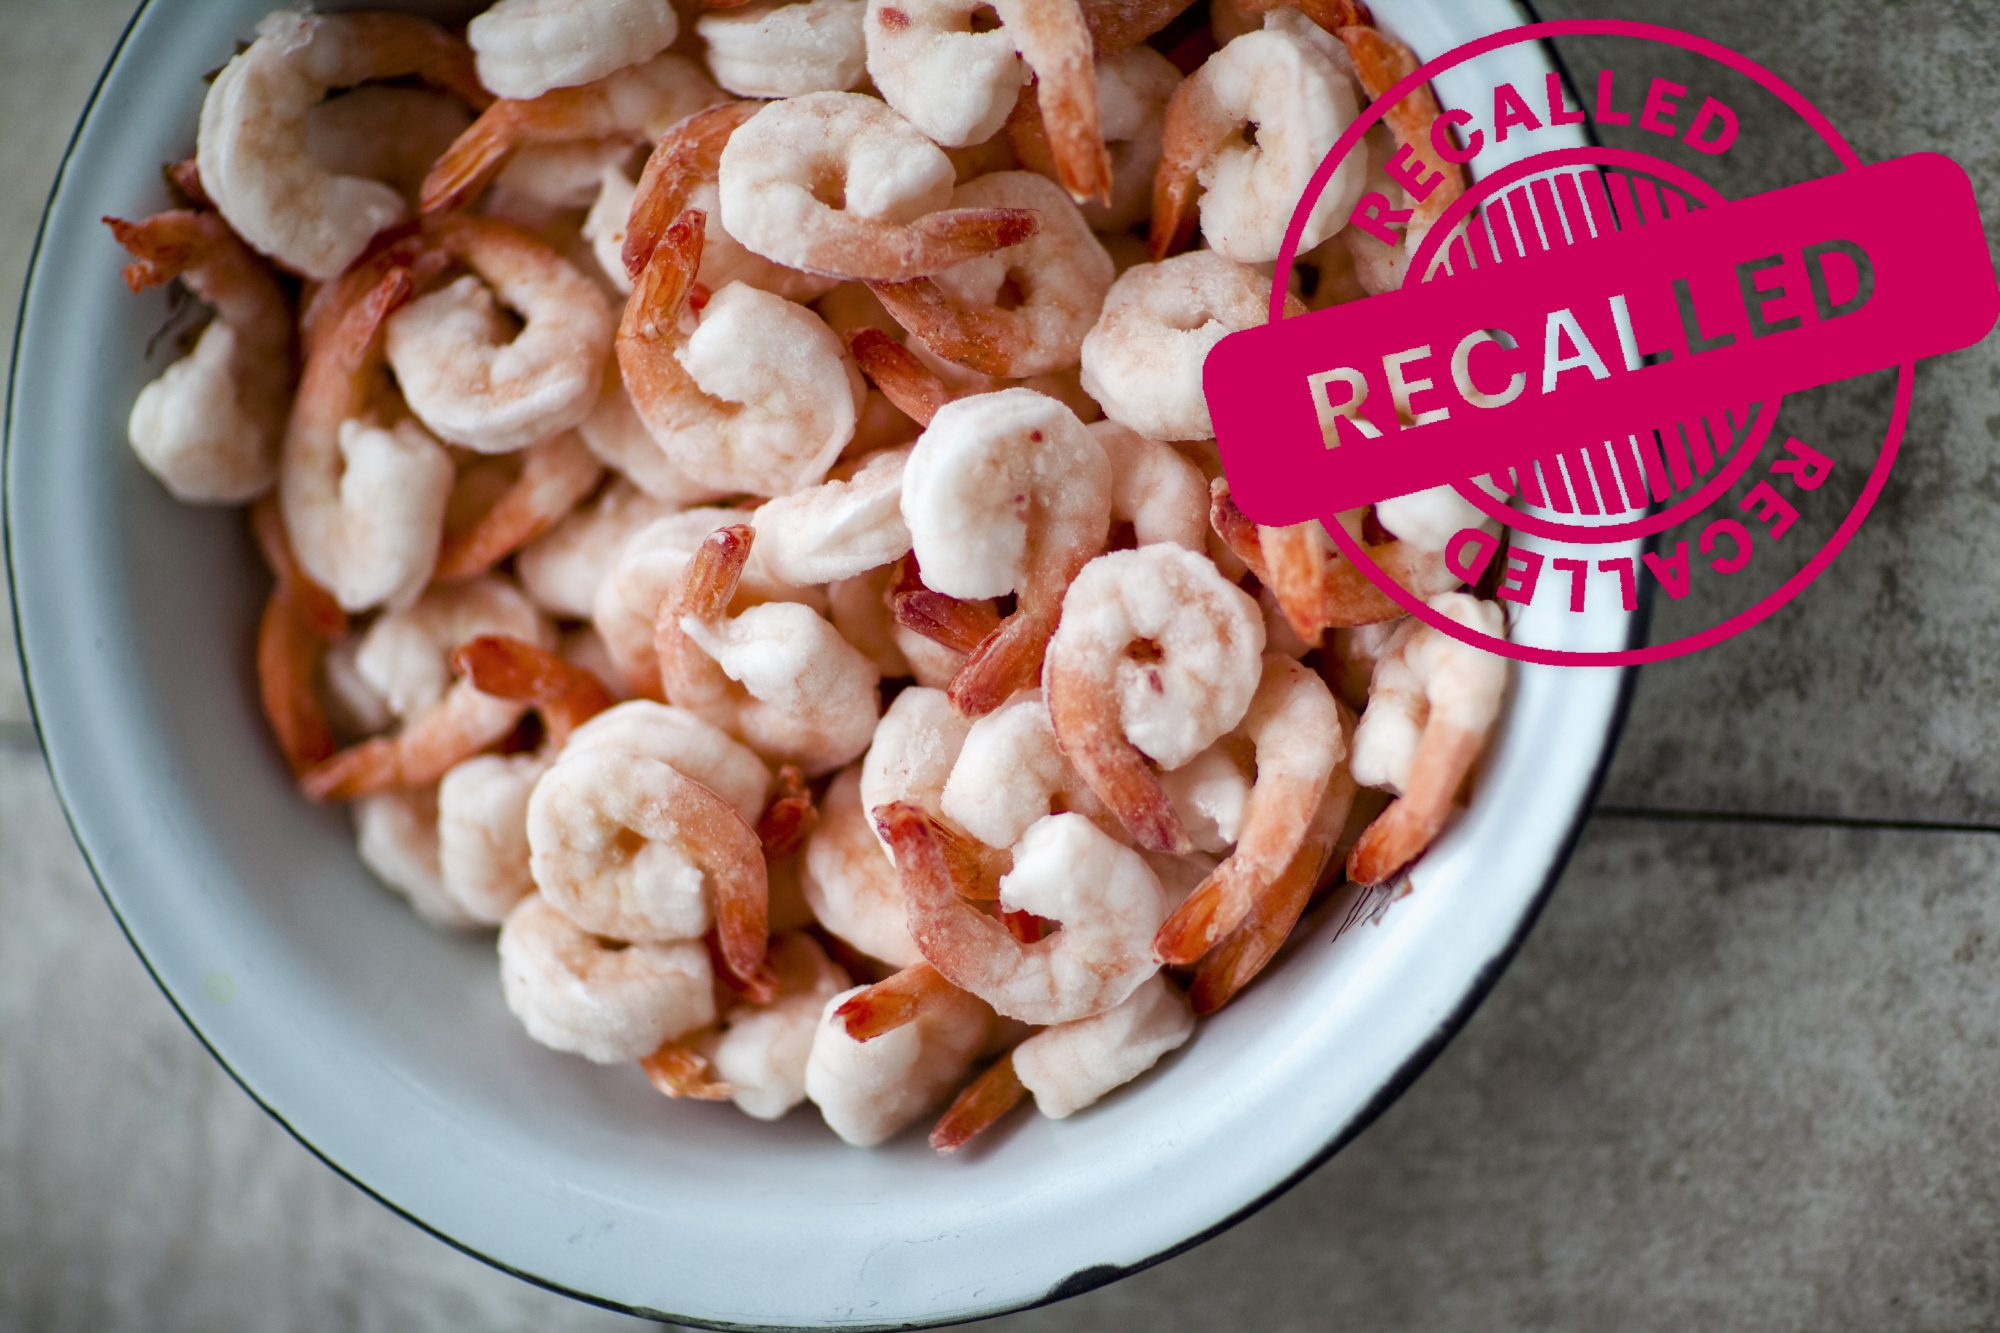 frozen shrimp in a bowl; recall stamp overlay